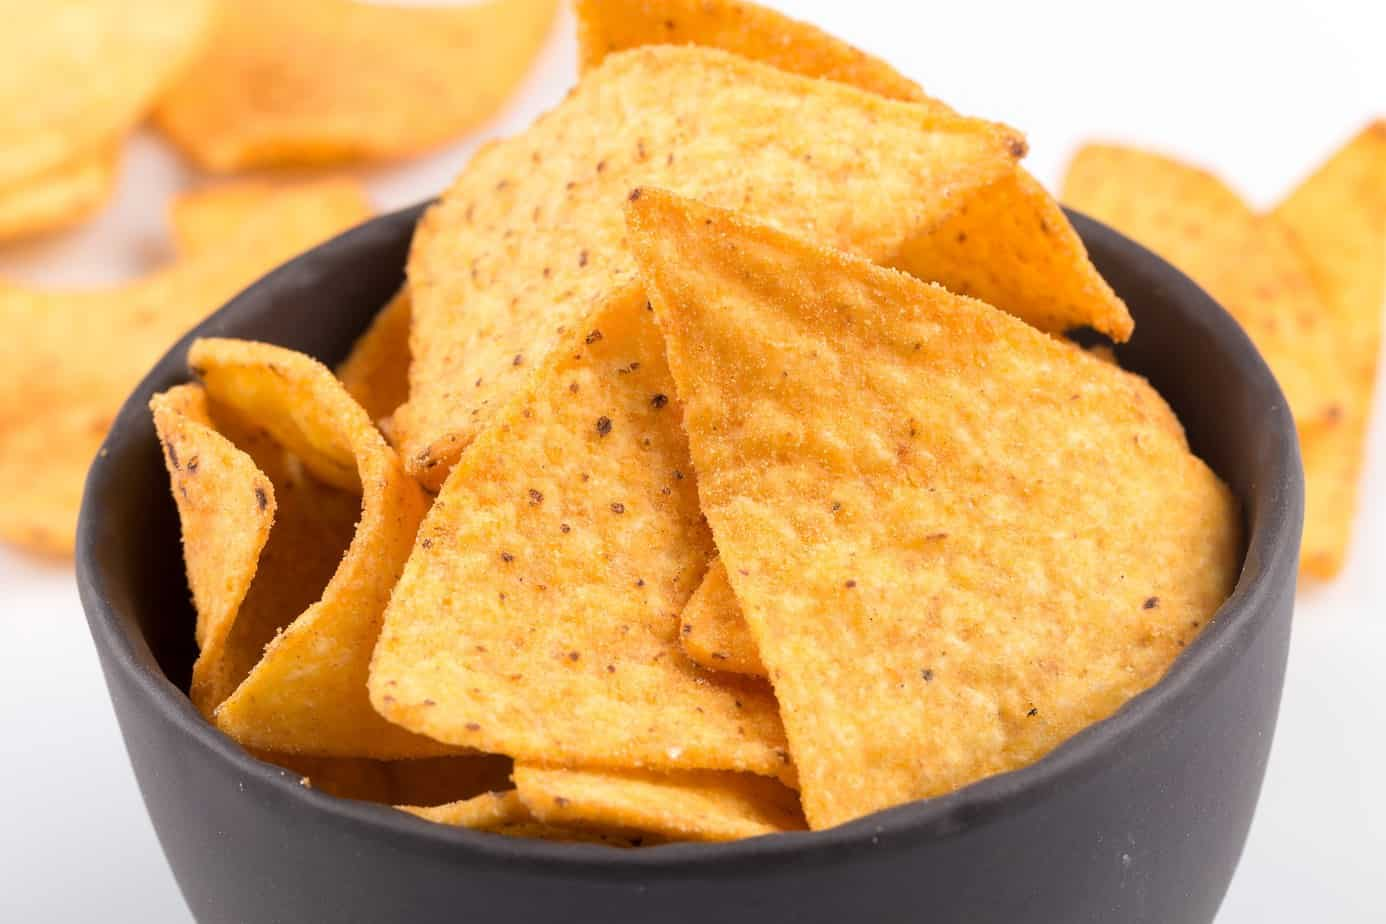 The Corn Chip